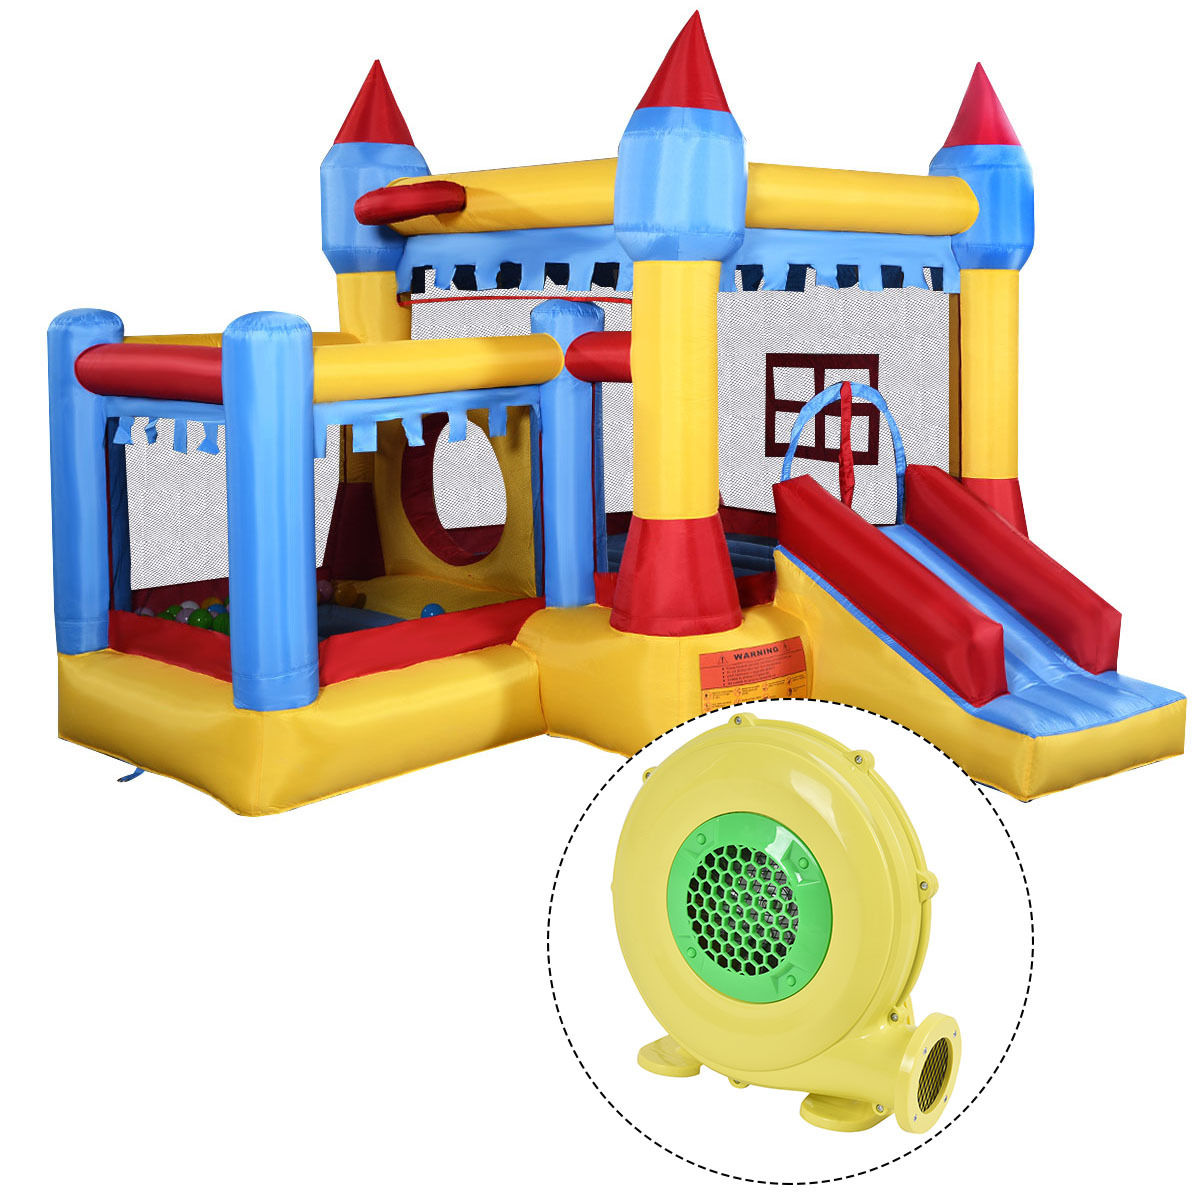 Costway Inflatable Bounce House Castle Commercial Kids Jumper Moonwalk With Ball&Blower